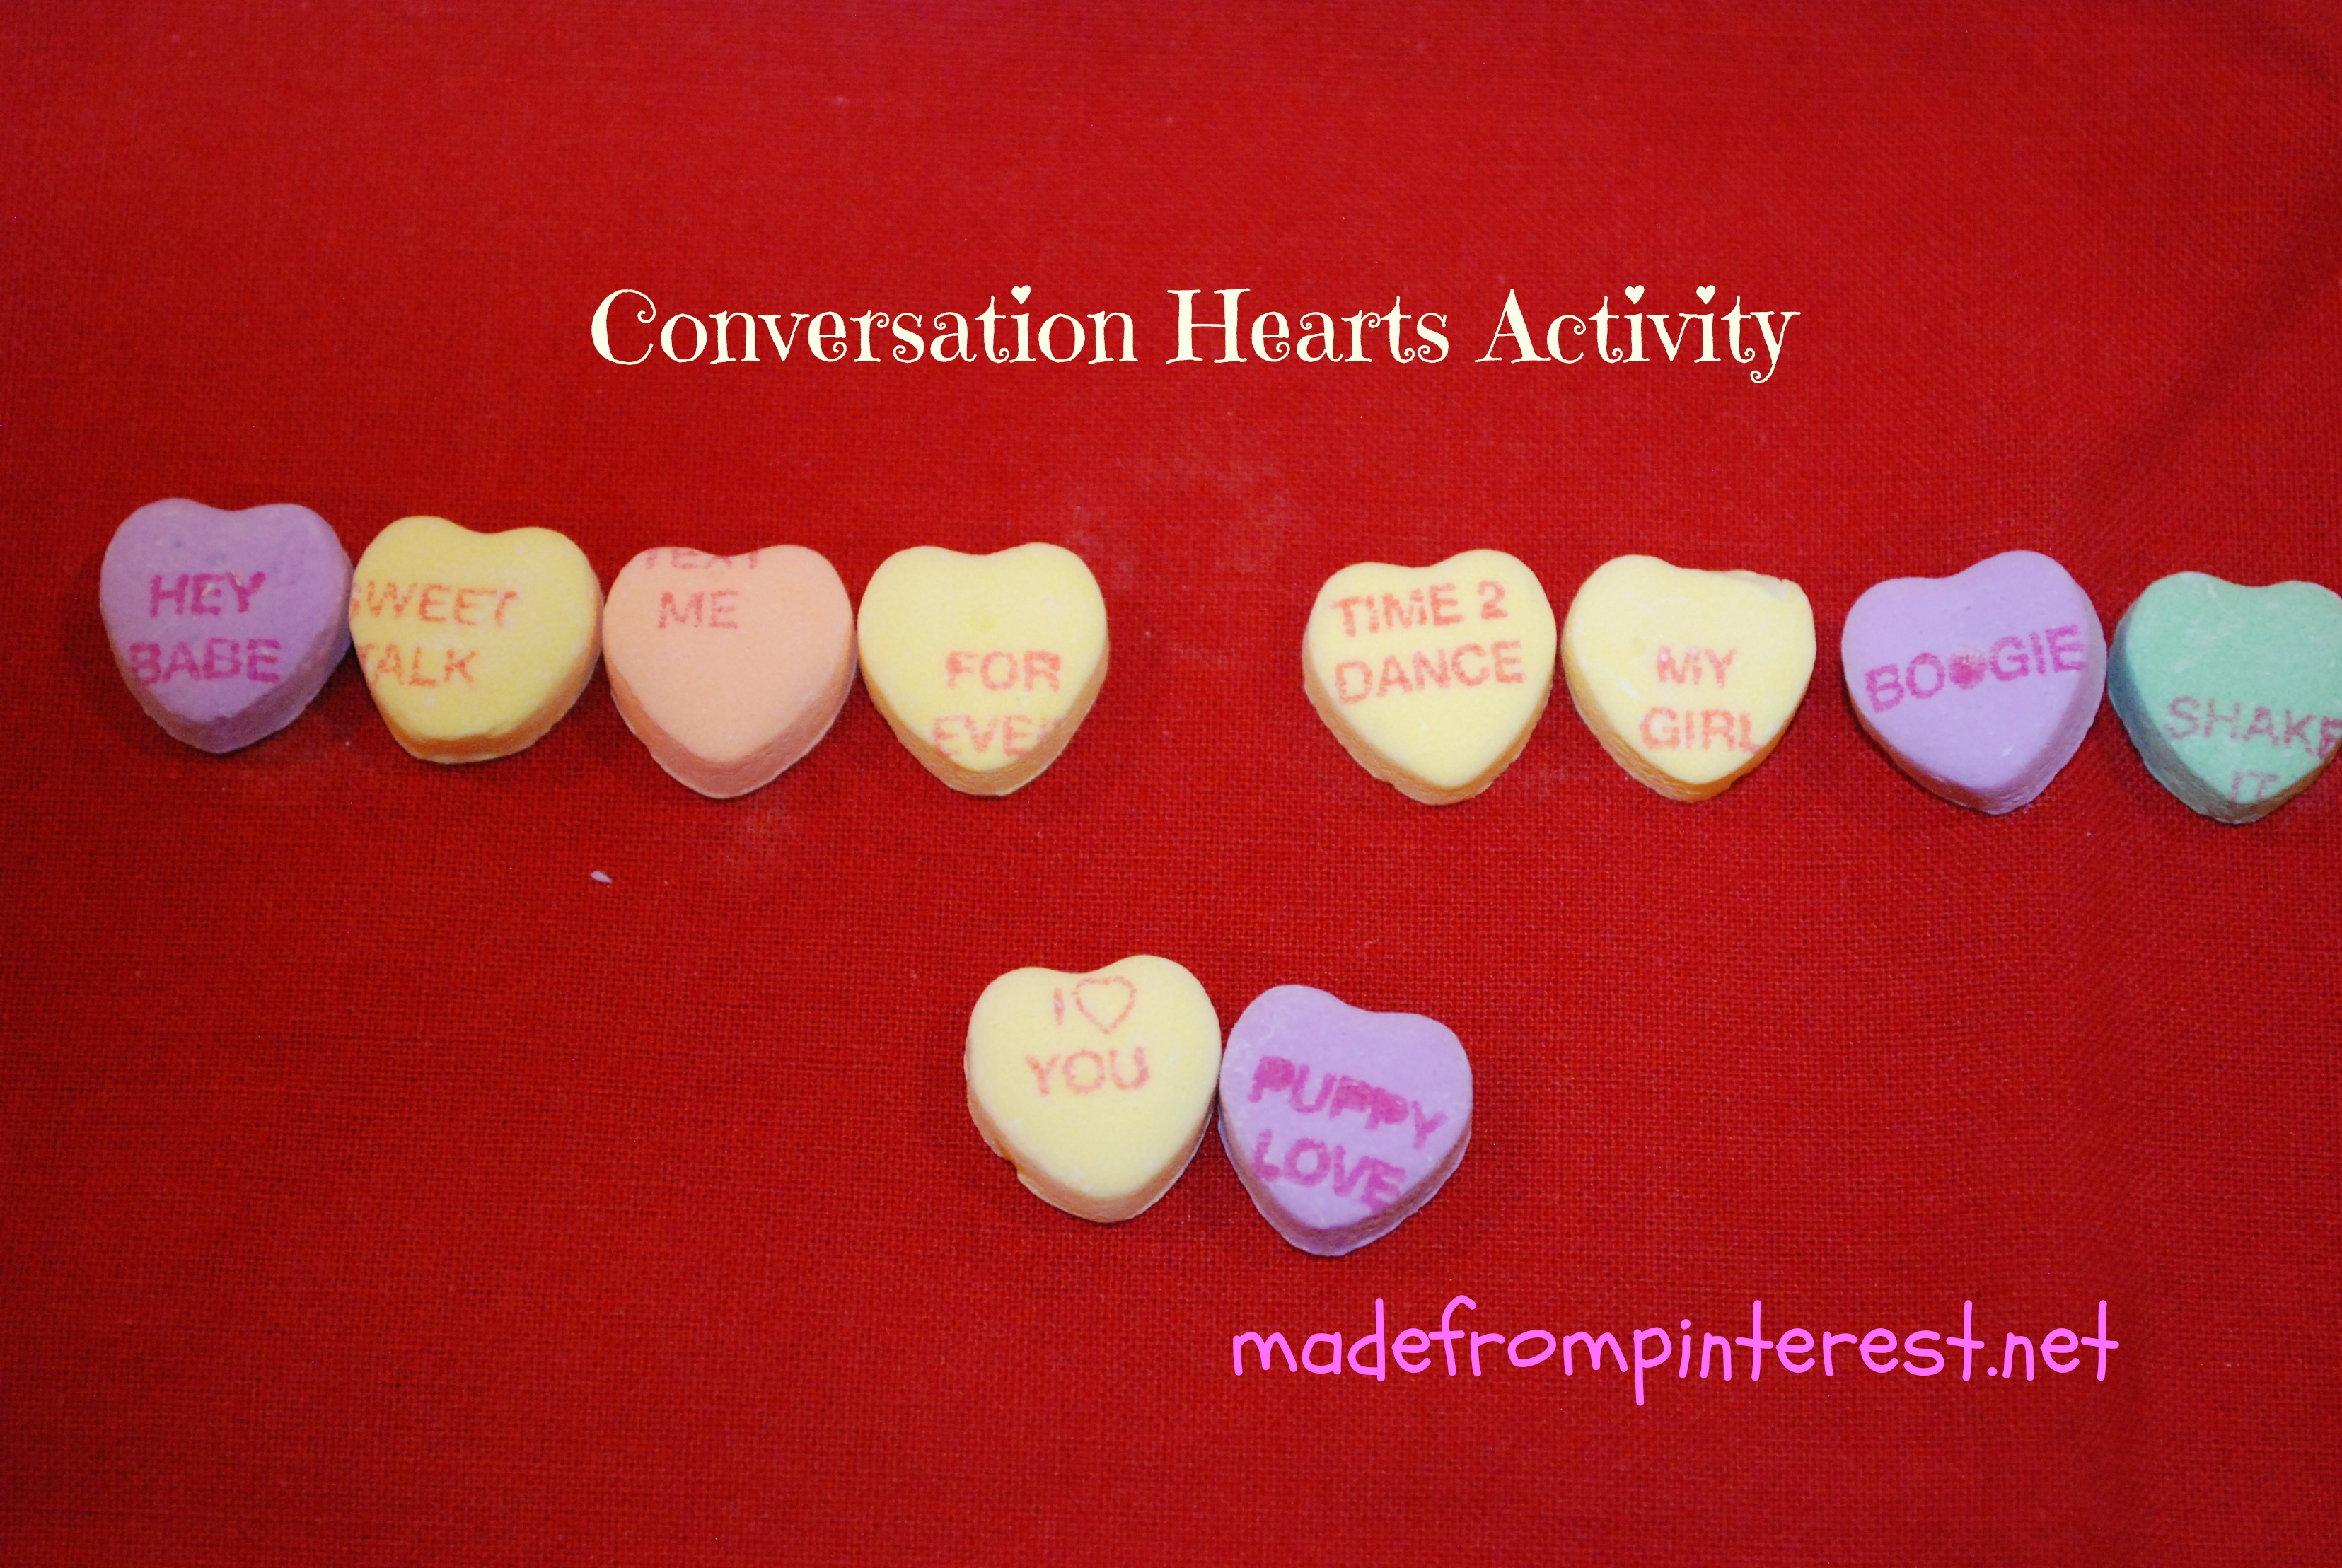 Conversation Hearts Activity